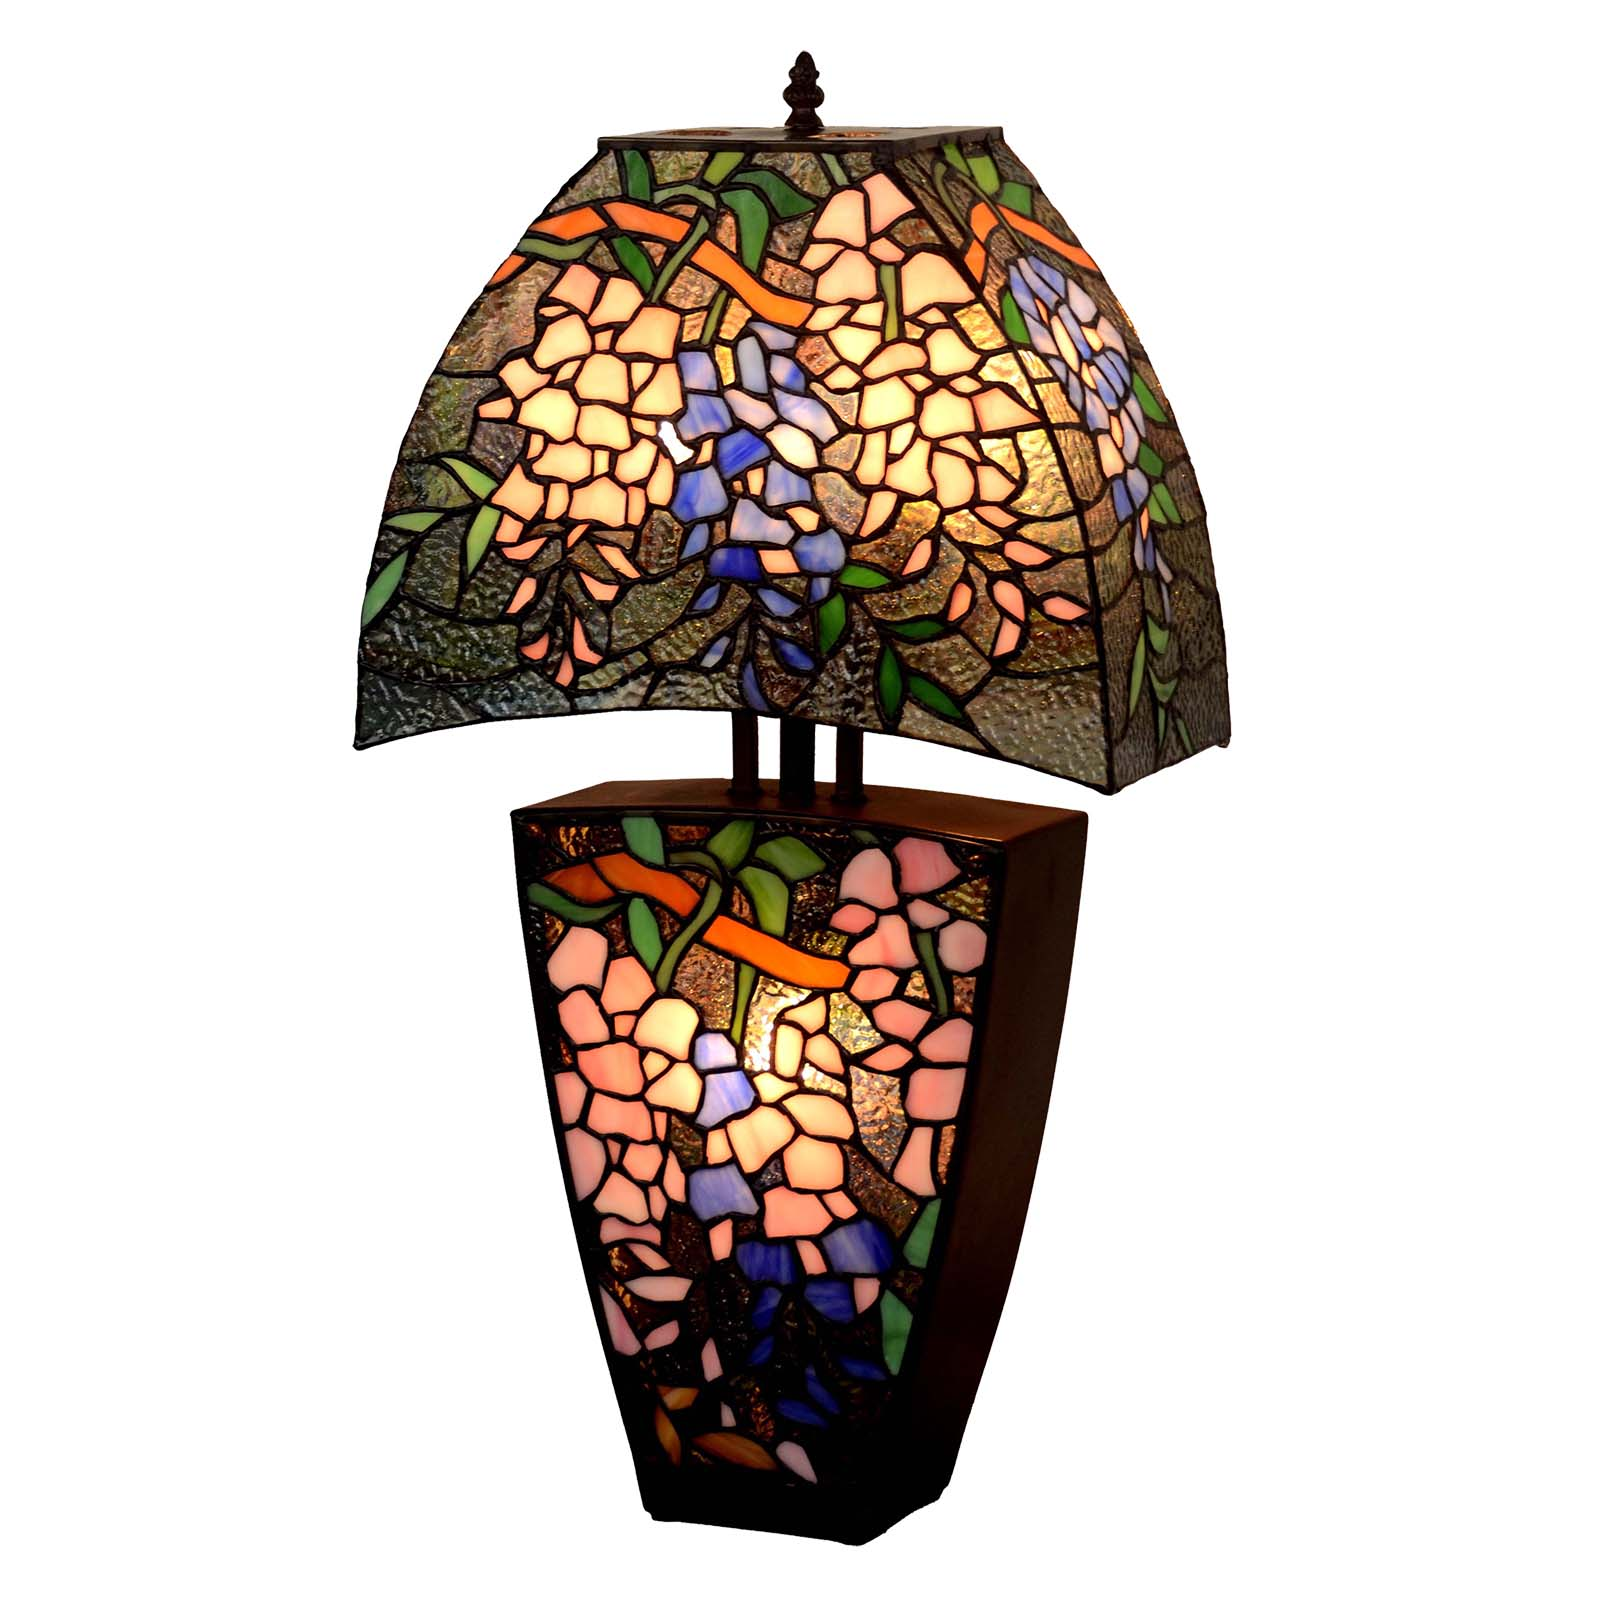 Bieye L10532 18 Inches Wisteria Tiffany Style Stained Glass Table